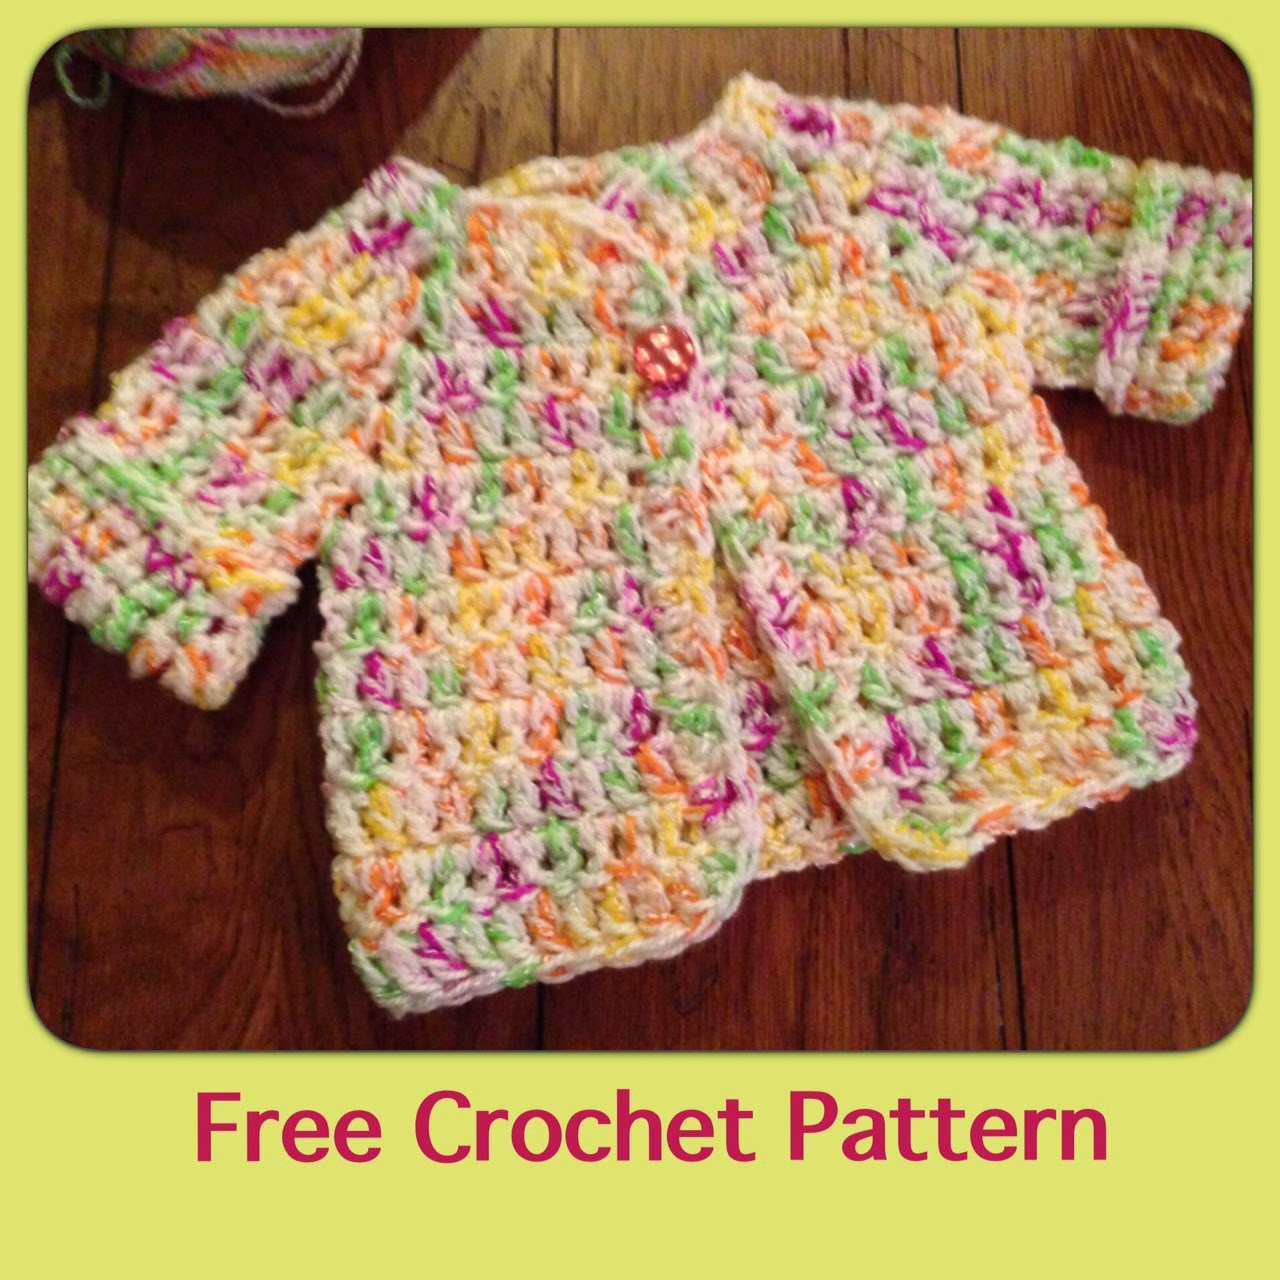 Easy Crochet Baby Sweater Pattern Free : Craft Brag: Free Crochet Baby Sweater Pattern